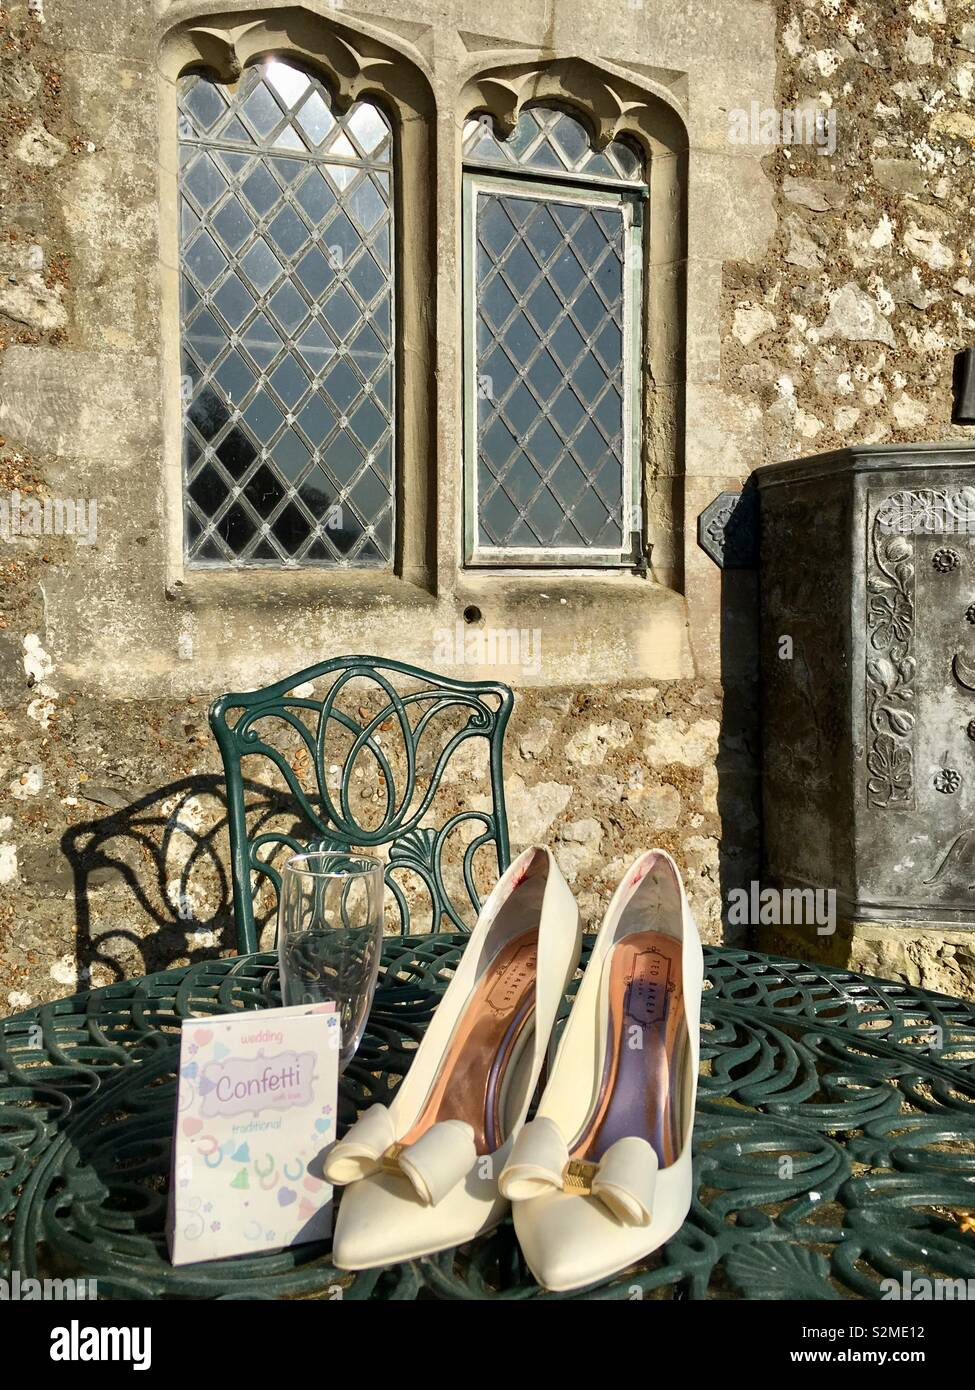 Wedding Shoes on a table in the sunshine Stock Photo